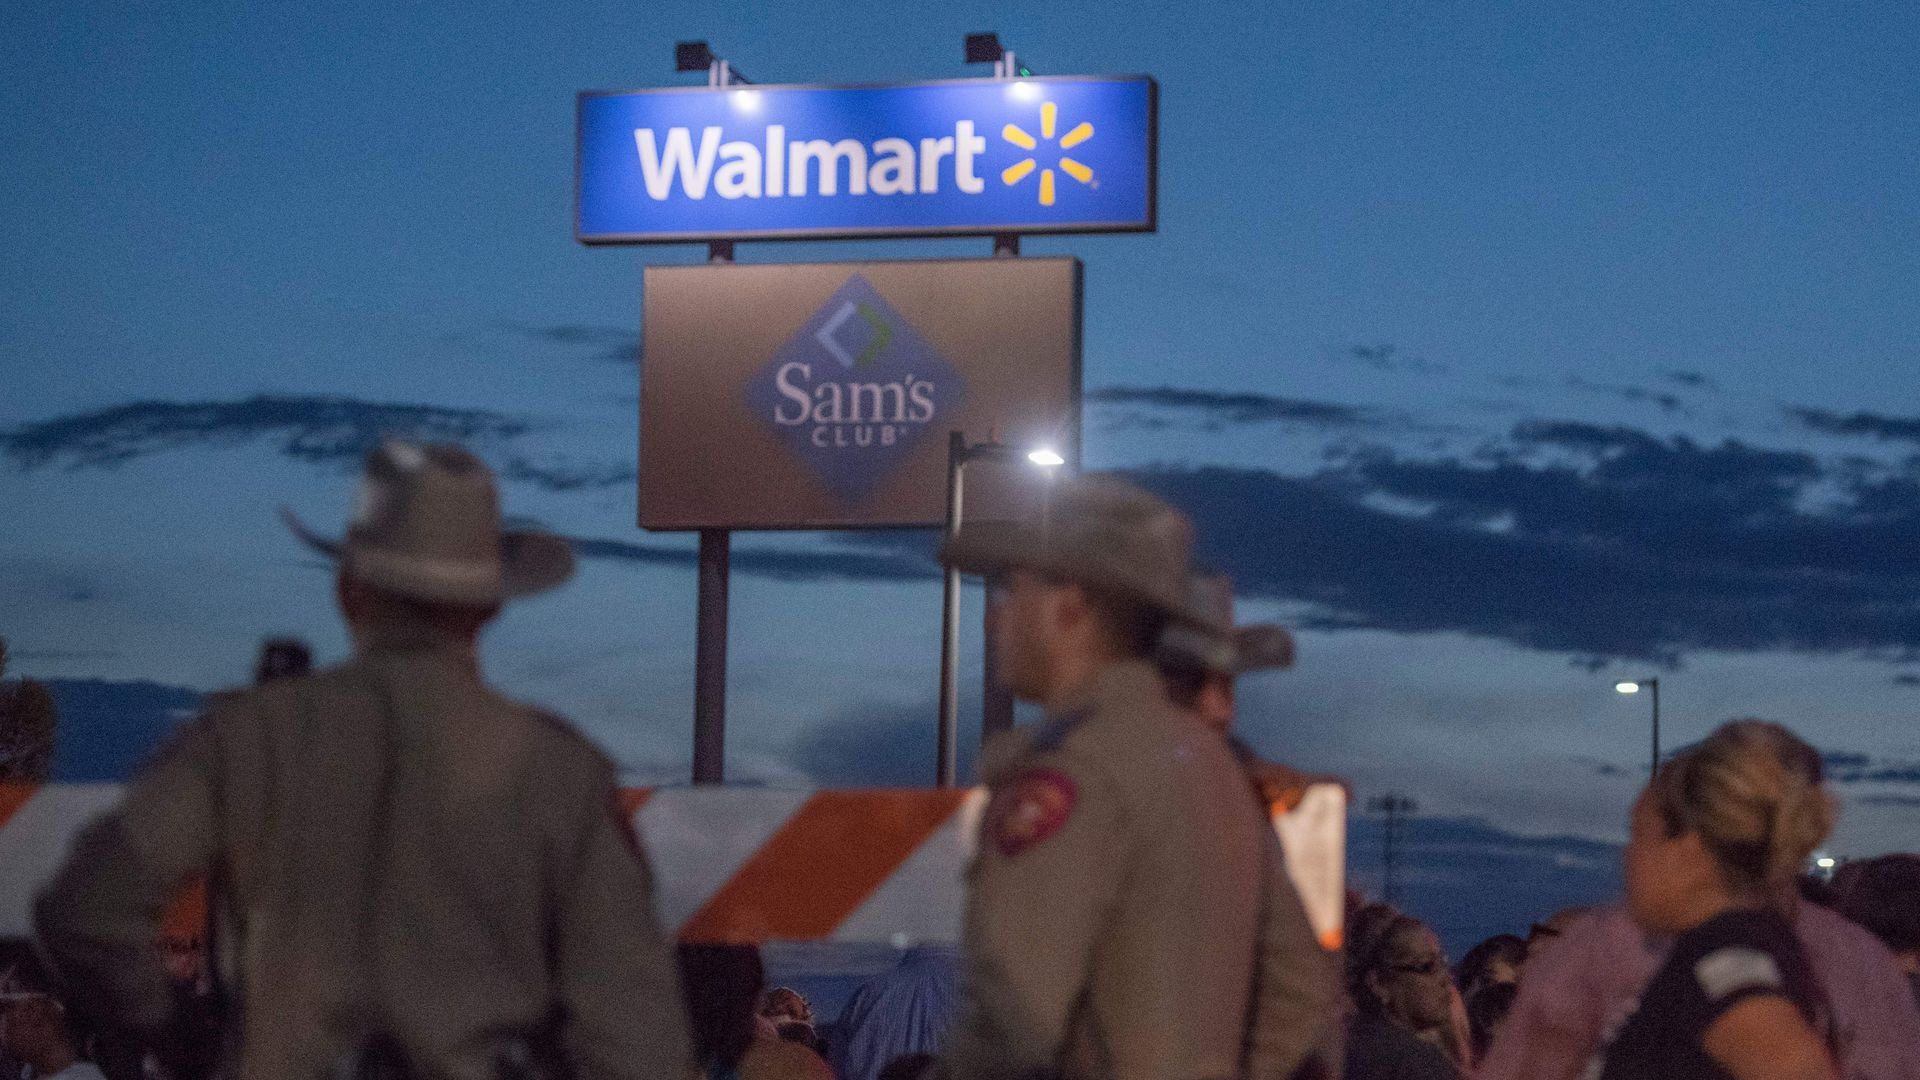 In this image, law enforcement stand in a Walmart parking lot at night. The Walmart logo is on a tall sign behind them.